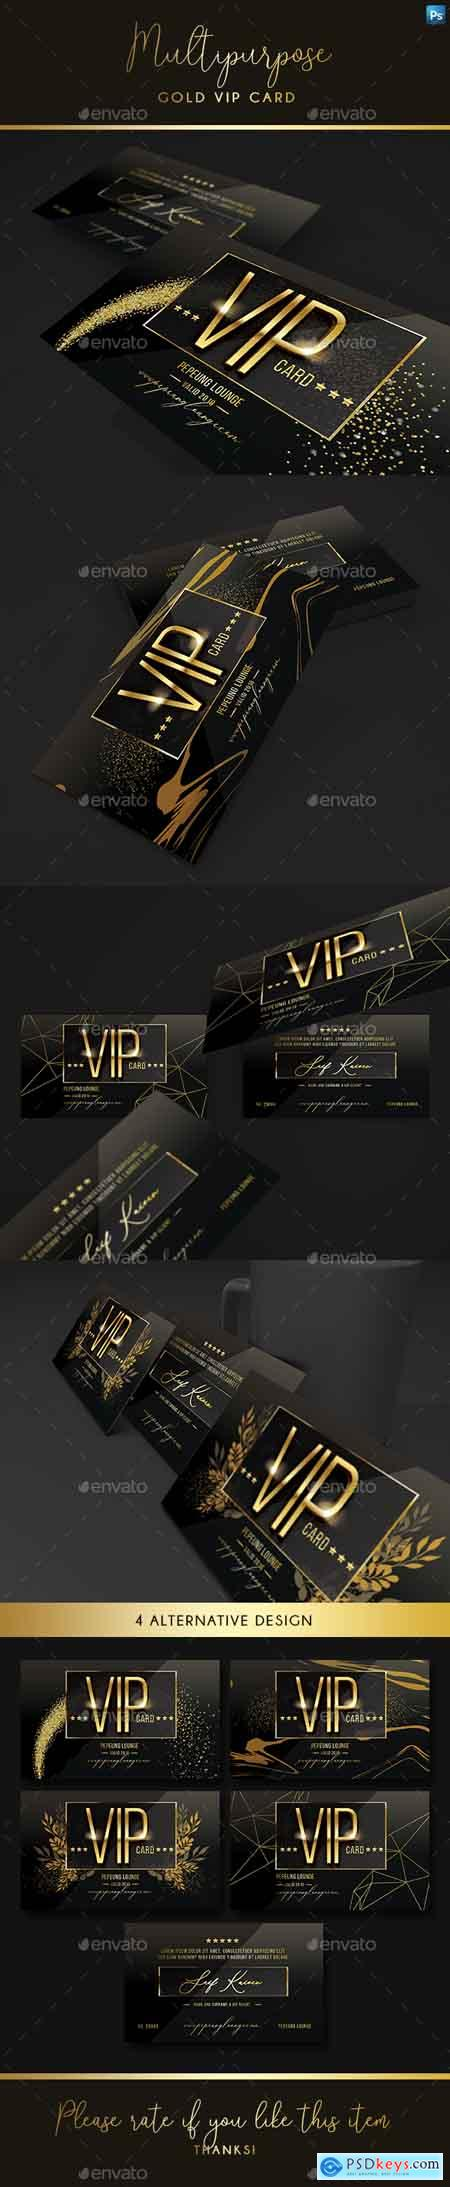 Graphicriver Multipurpose Gold Vip Card